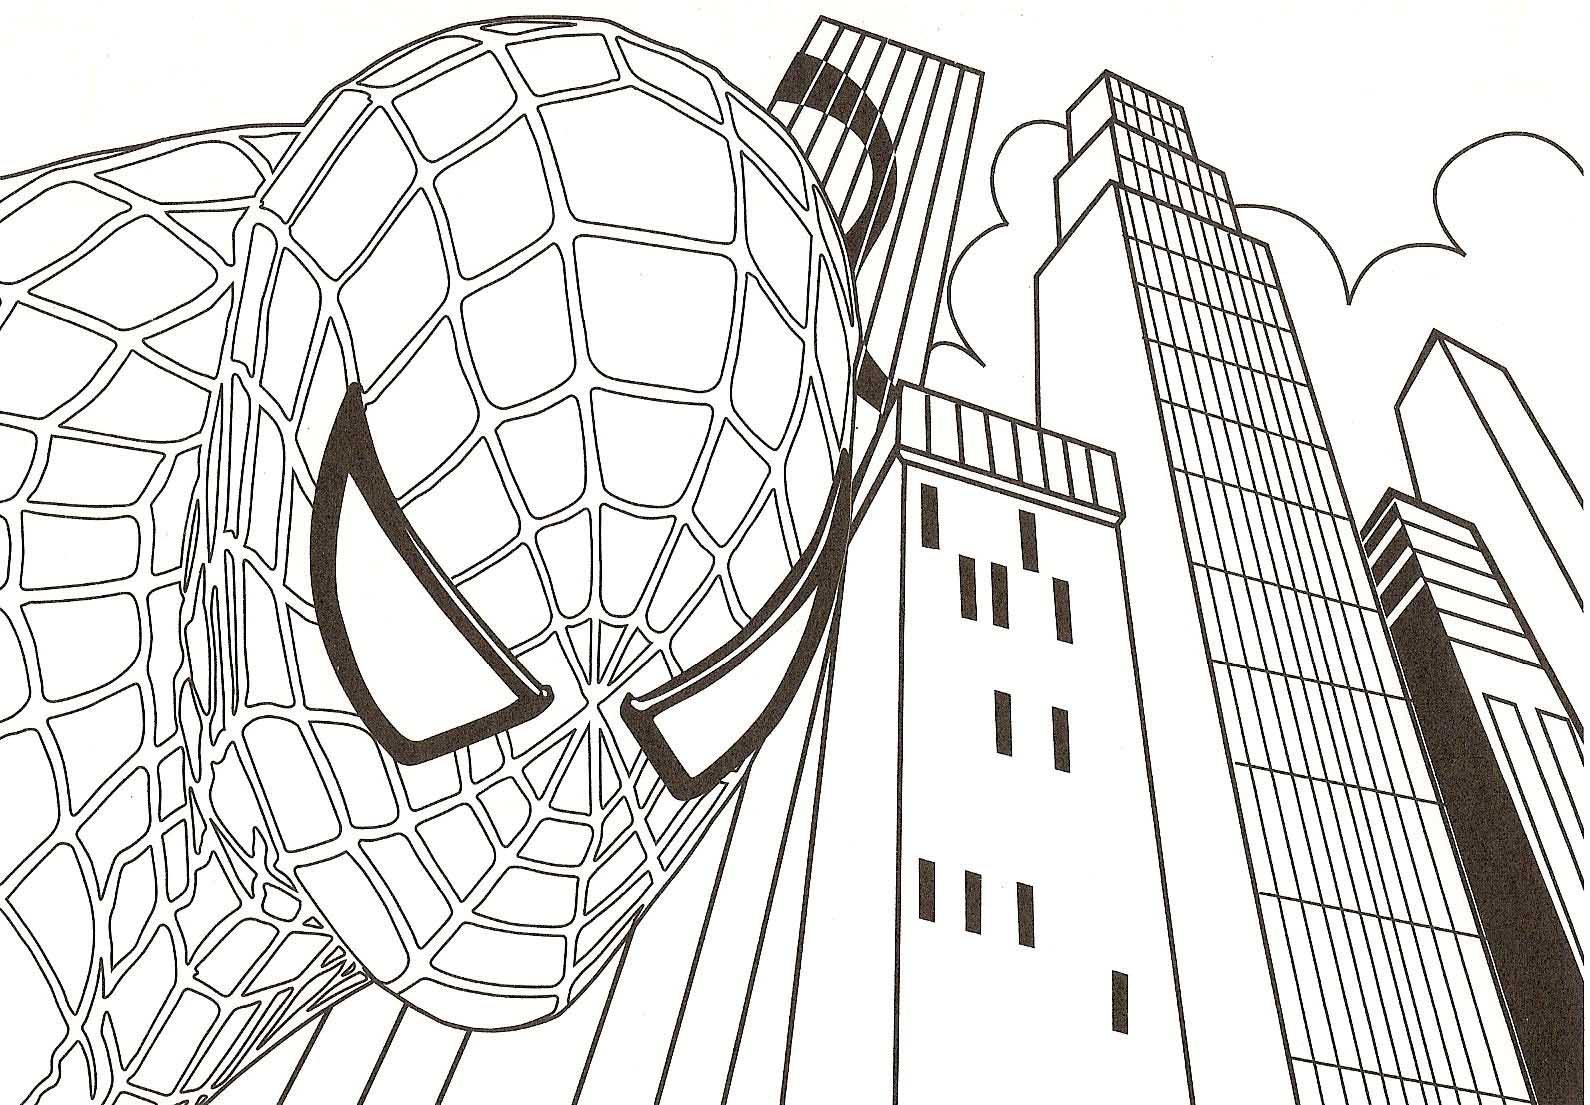 graphic about Printable Spiderman Coloring Pages referred to as Free of charge Printable Spiderman Coloring Web pages For Little ones